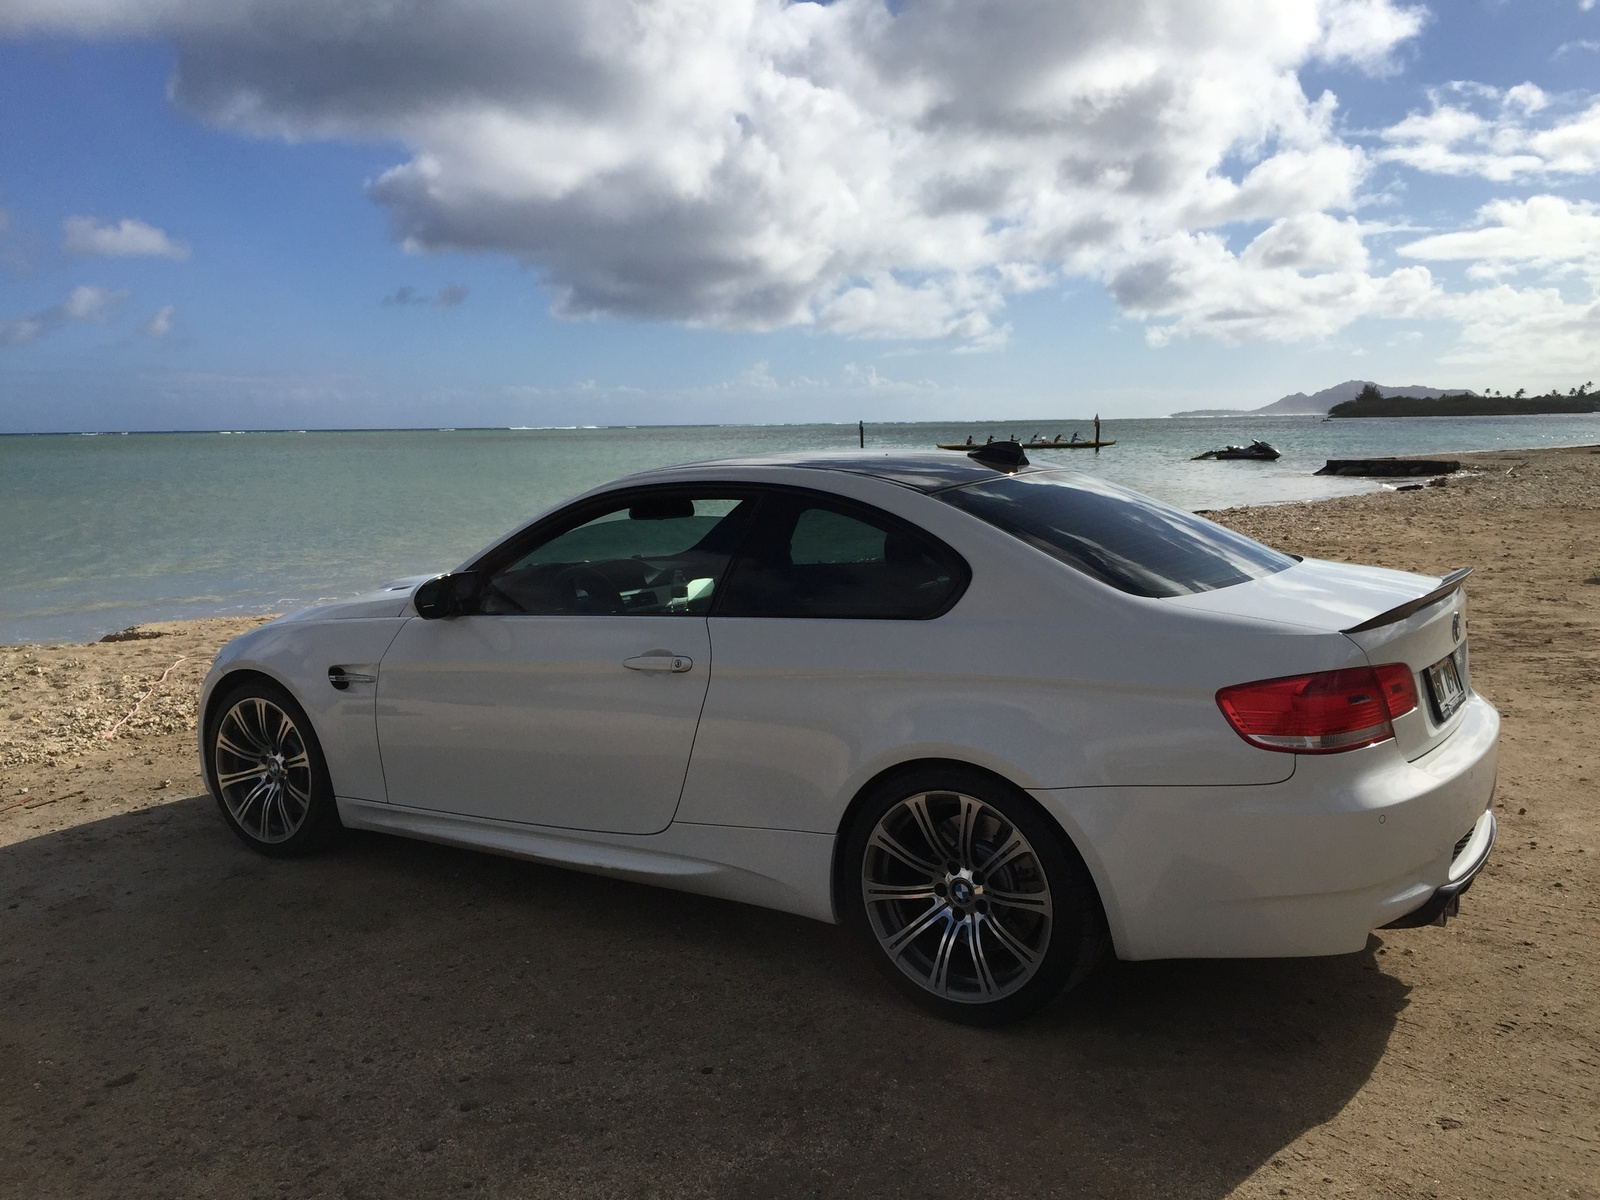 Https static cargurus com images site 2017 02 26 16 22 2008_bmw_m3_coupe pic 6896059905775445188 1600x1200 jpeg